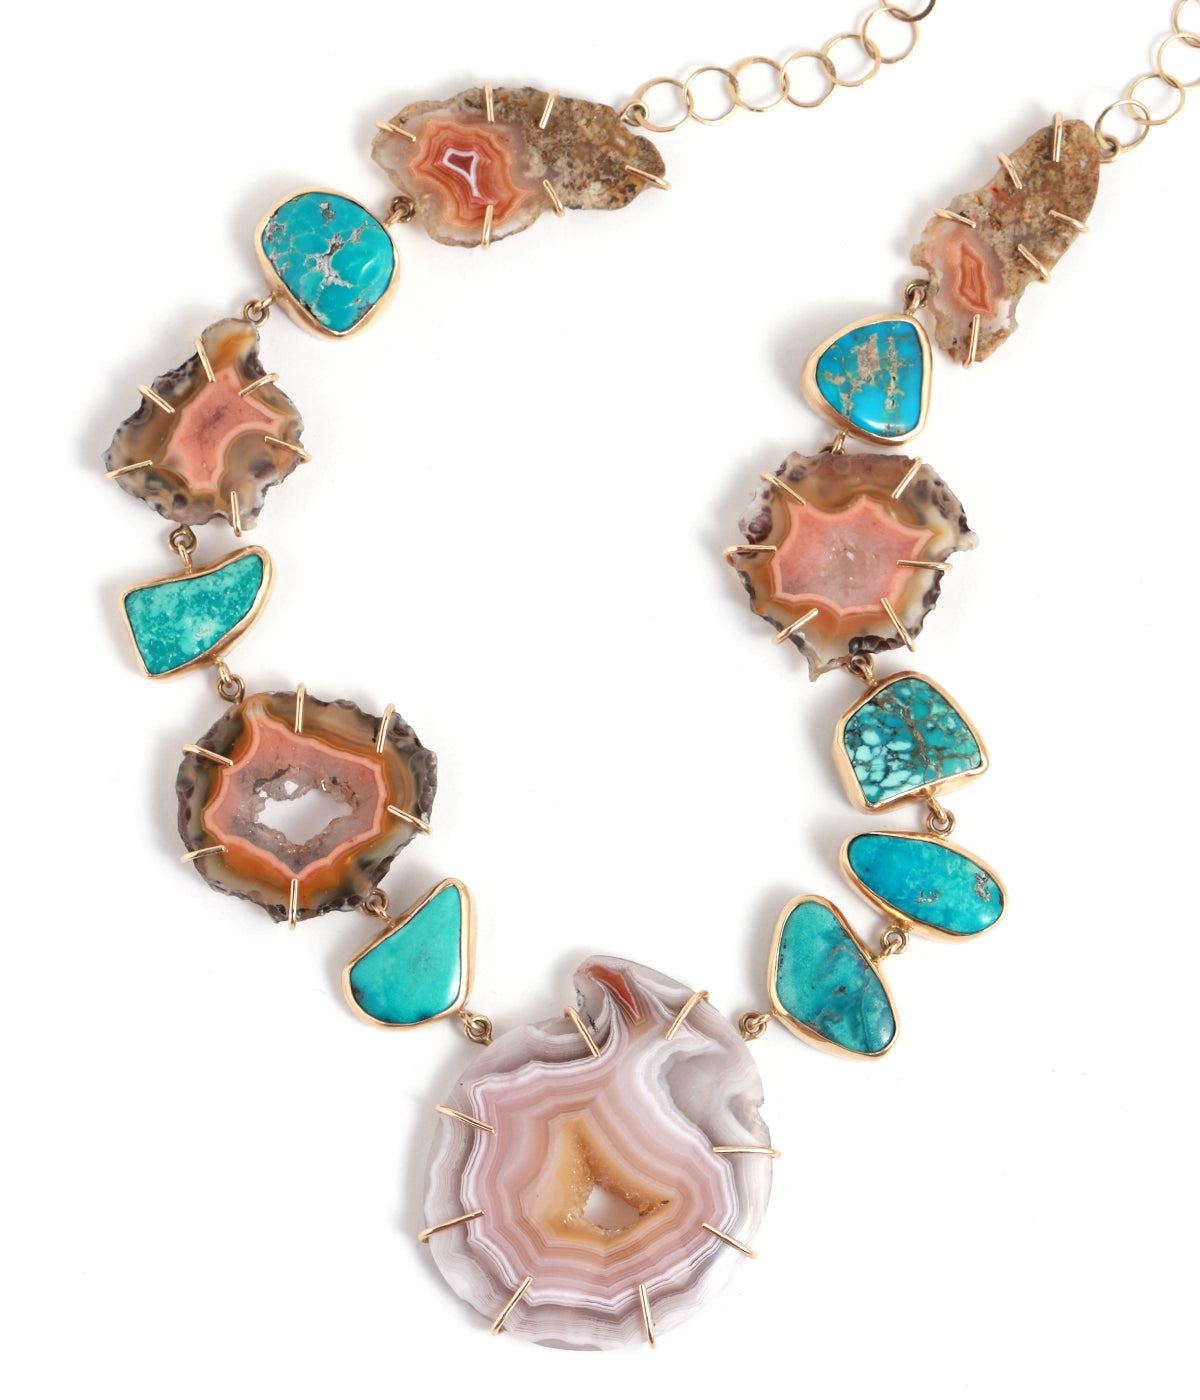 Agate and Turquoise Collar Necklace - Melissa Joy Manning Jewelry